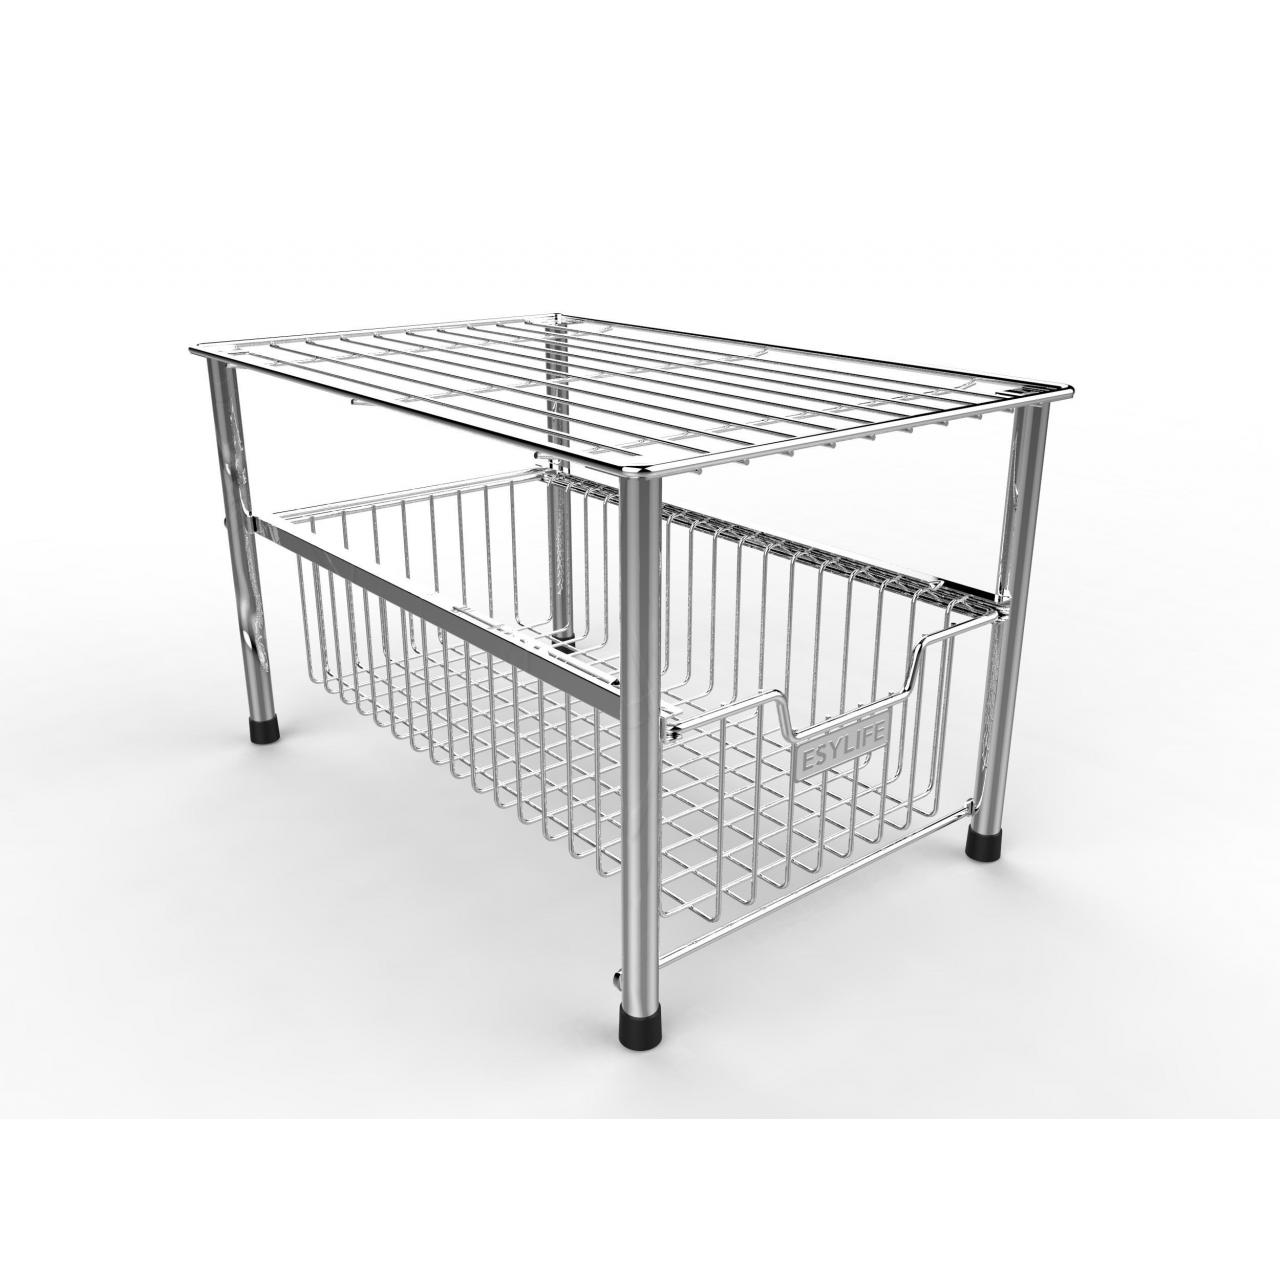 Buy cheap PRODUCT ESYLIFE Mesh Kitchen Cabinet Basket organizer with Sliding Drawer, Silver from wholesalers